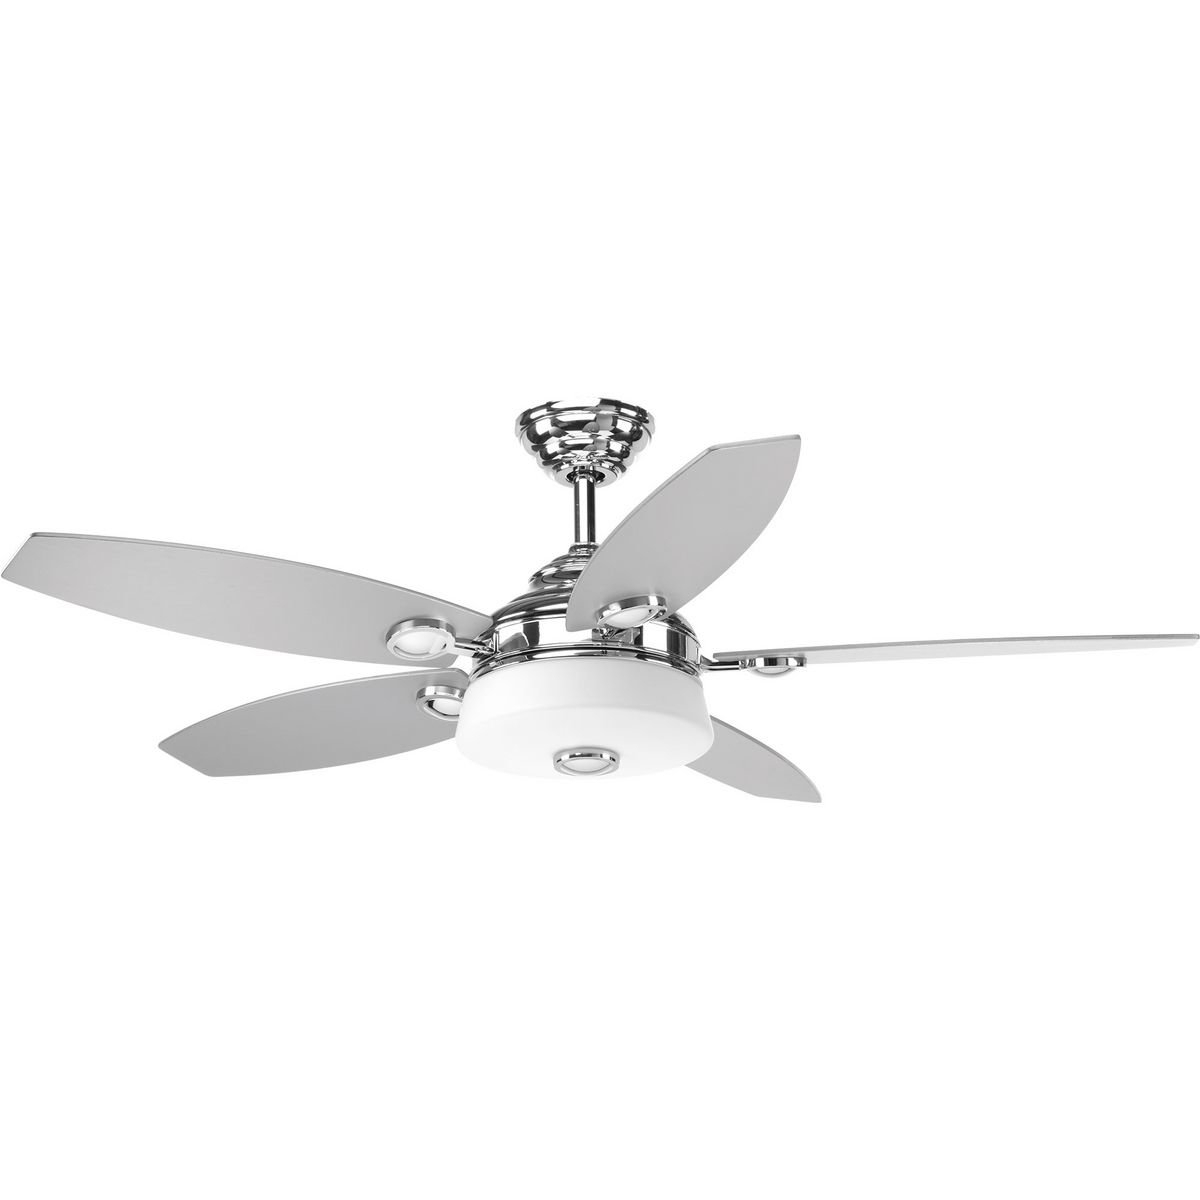 """Most Recent 54"""" Keriann 5 Blade Led Ceiling Fan With Remote, Light Kit Included Inside Stewardson 4 Blade Ceiling Fans (View 9 of 20)"""